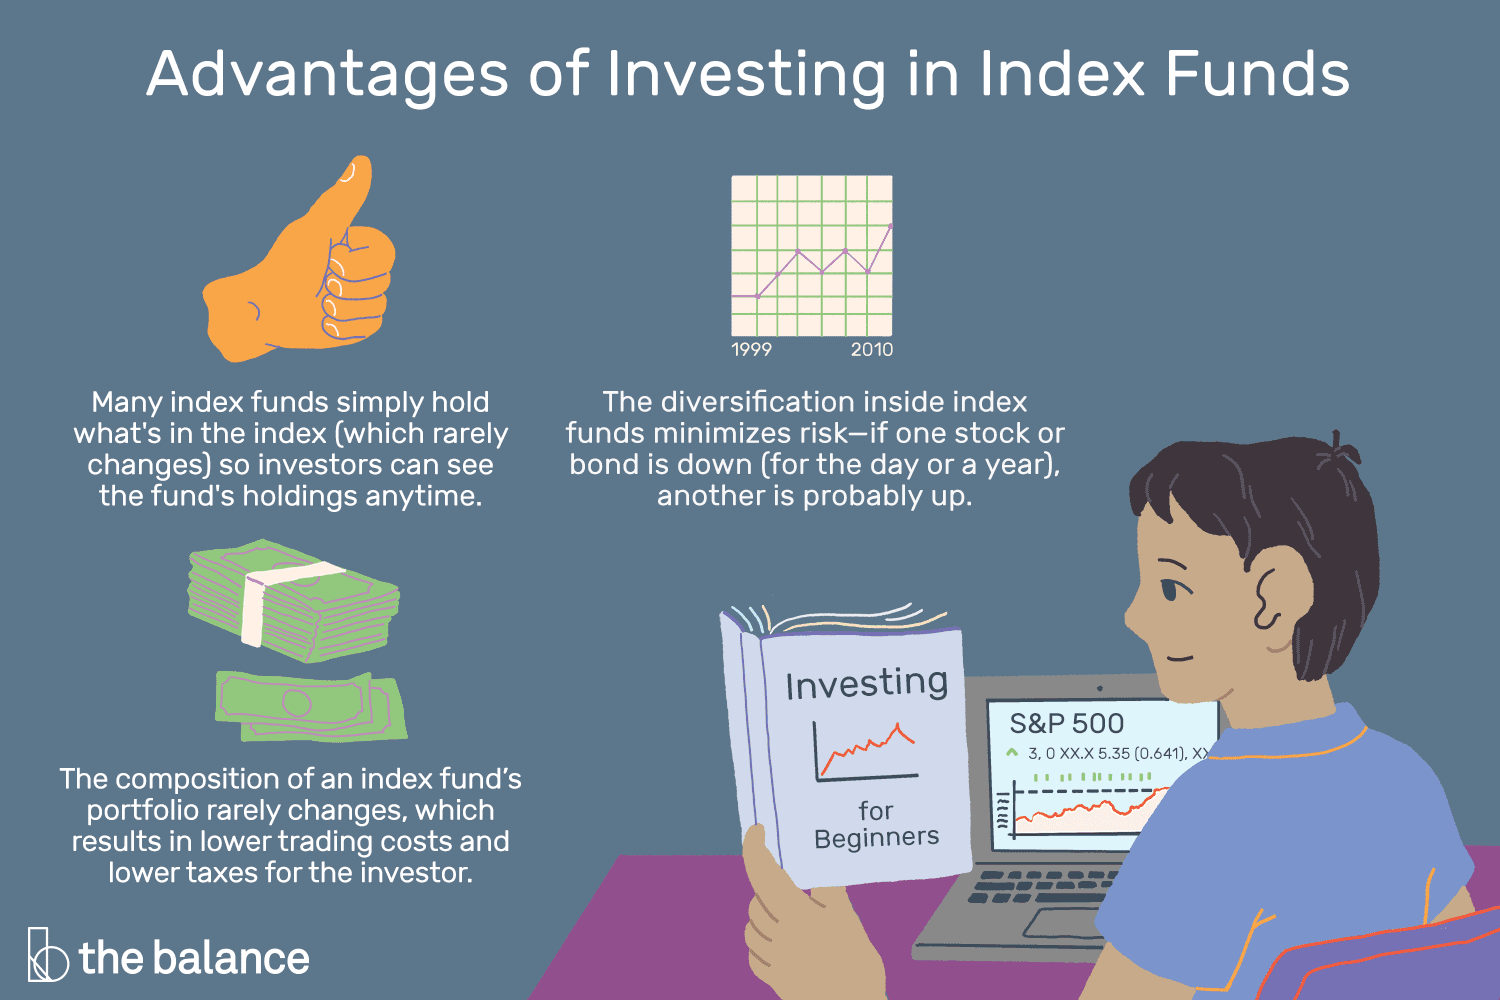 Investing in Index Funds for Beginners